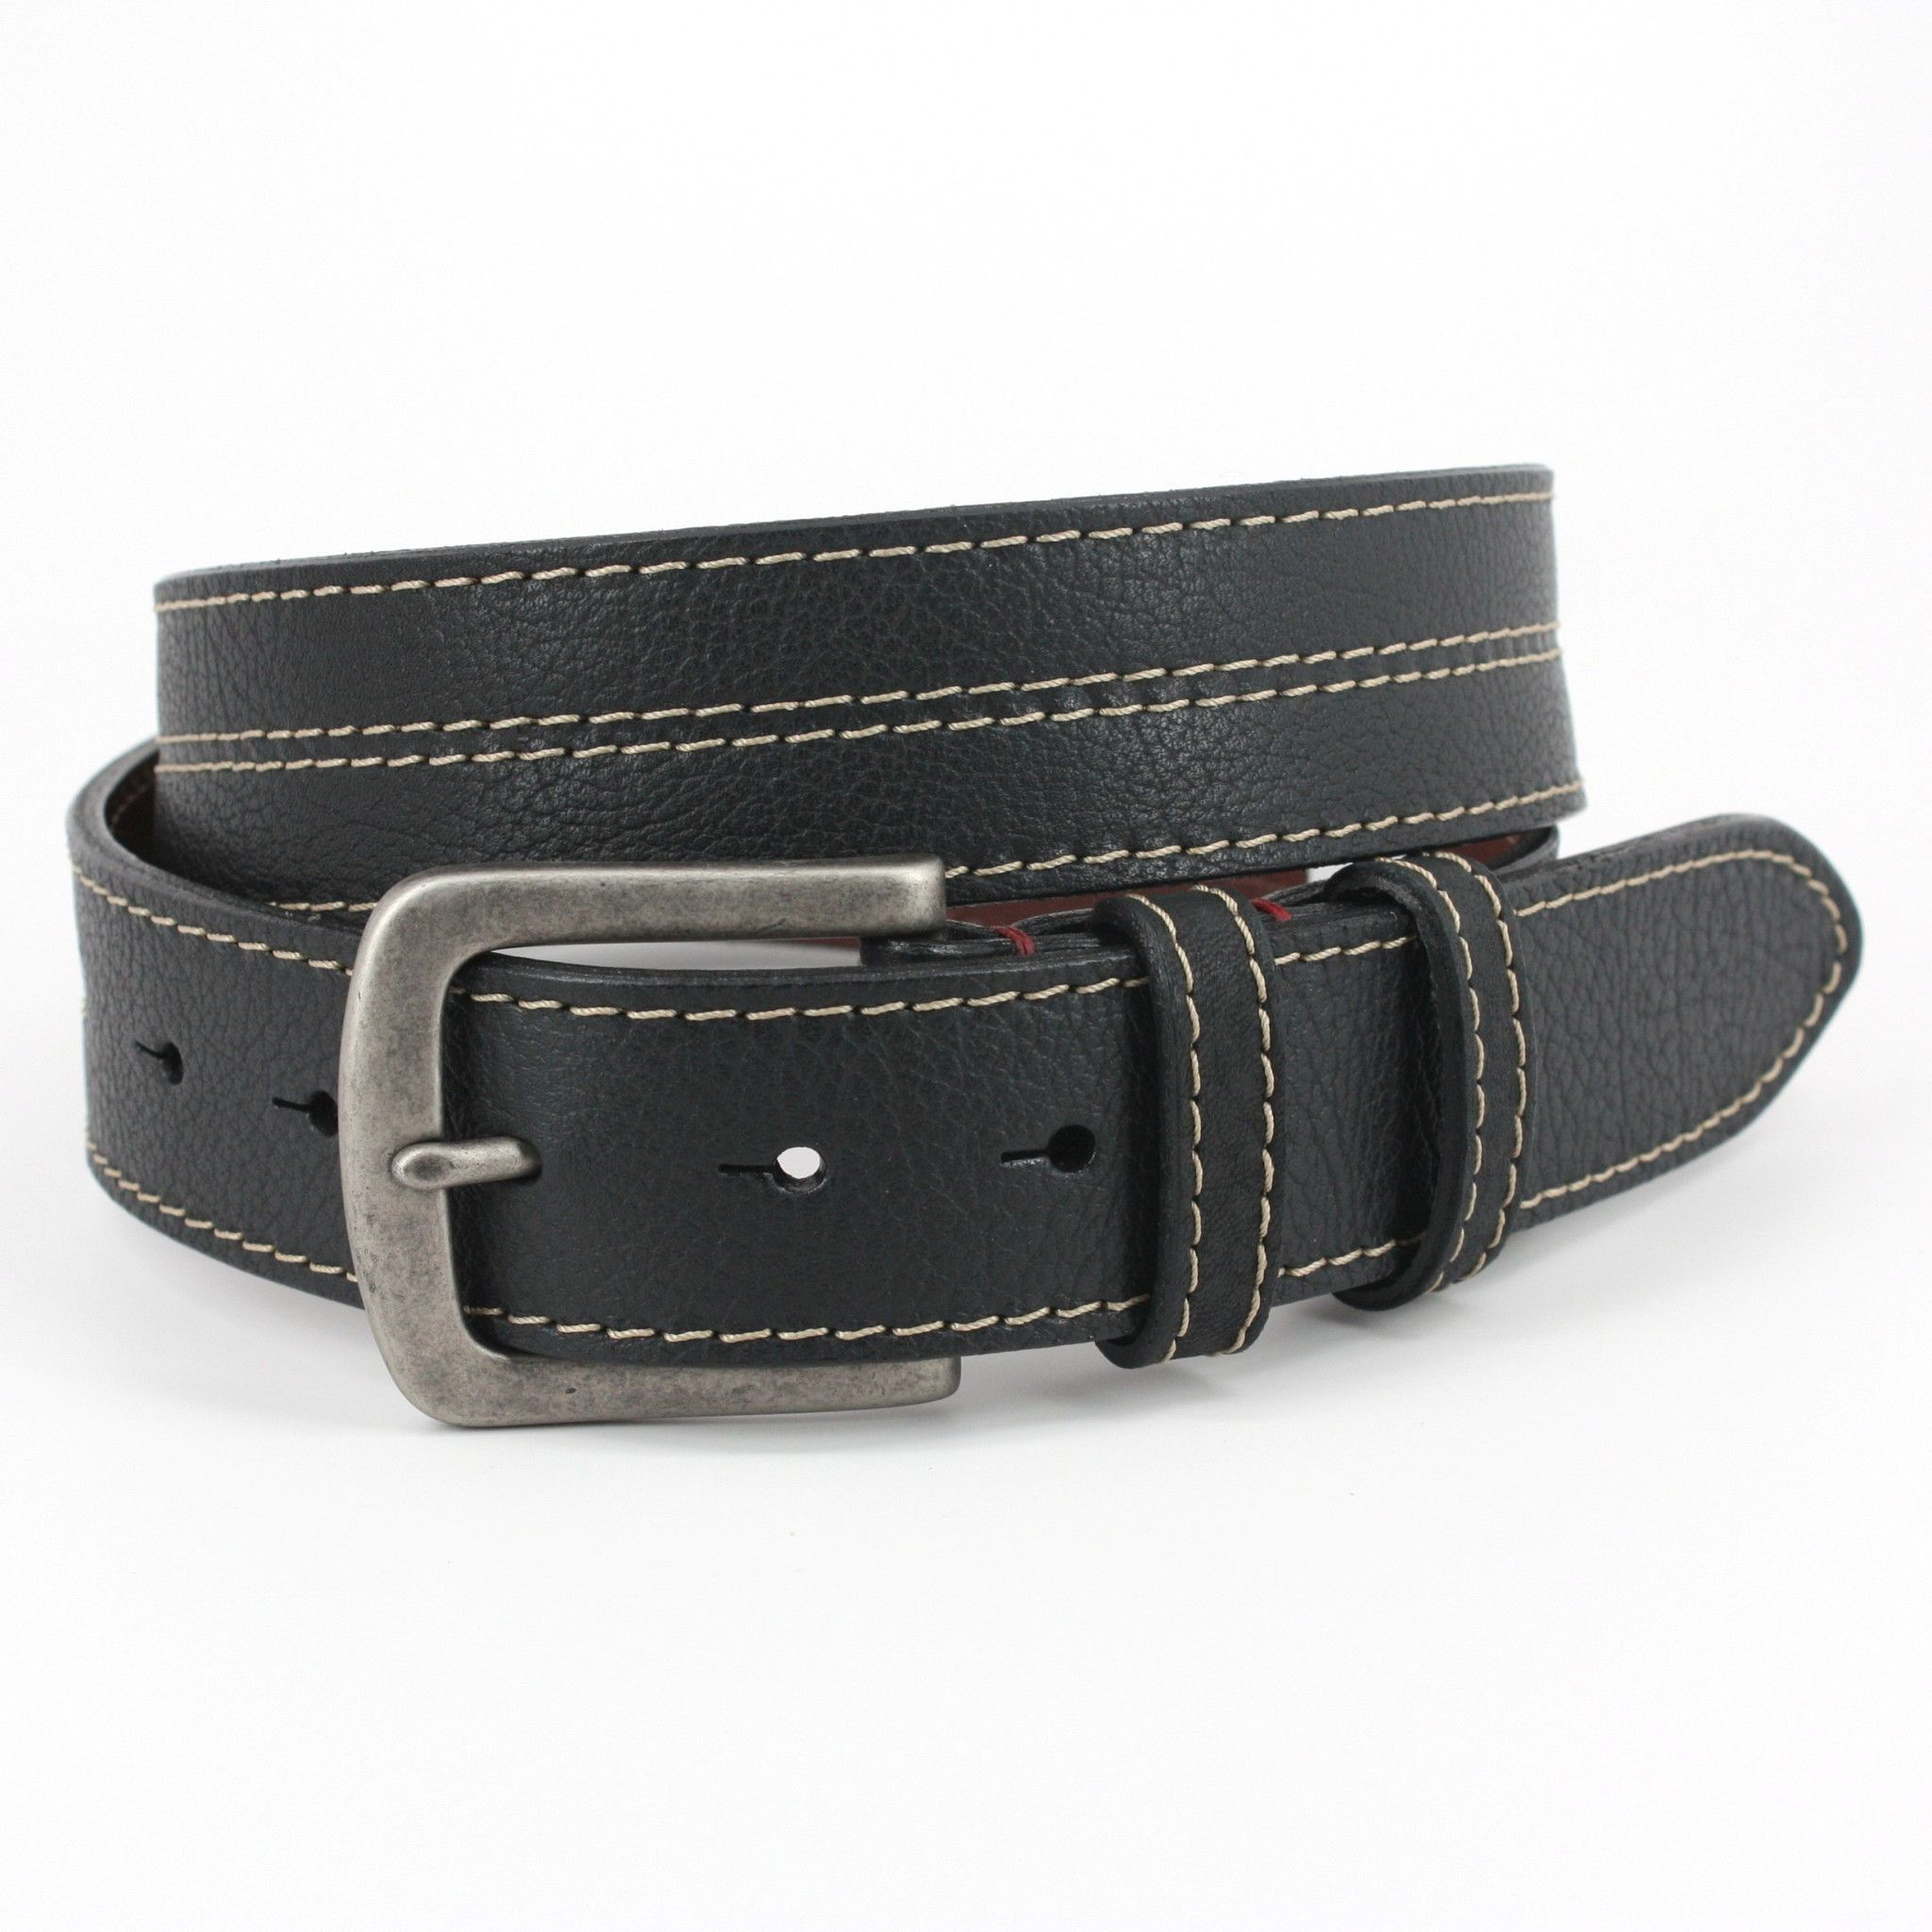 Black Shrunken Bison Leather Belt Quality USA Handcrafted